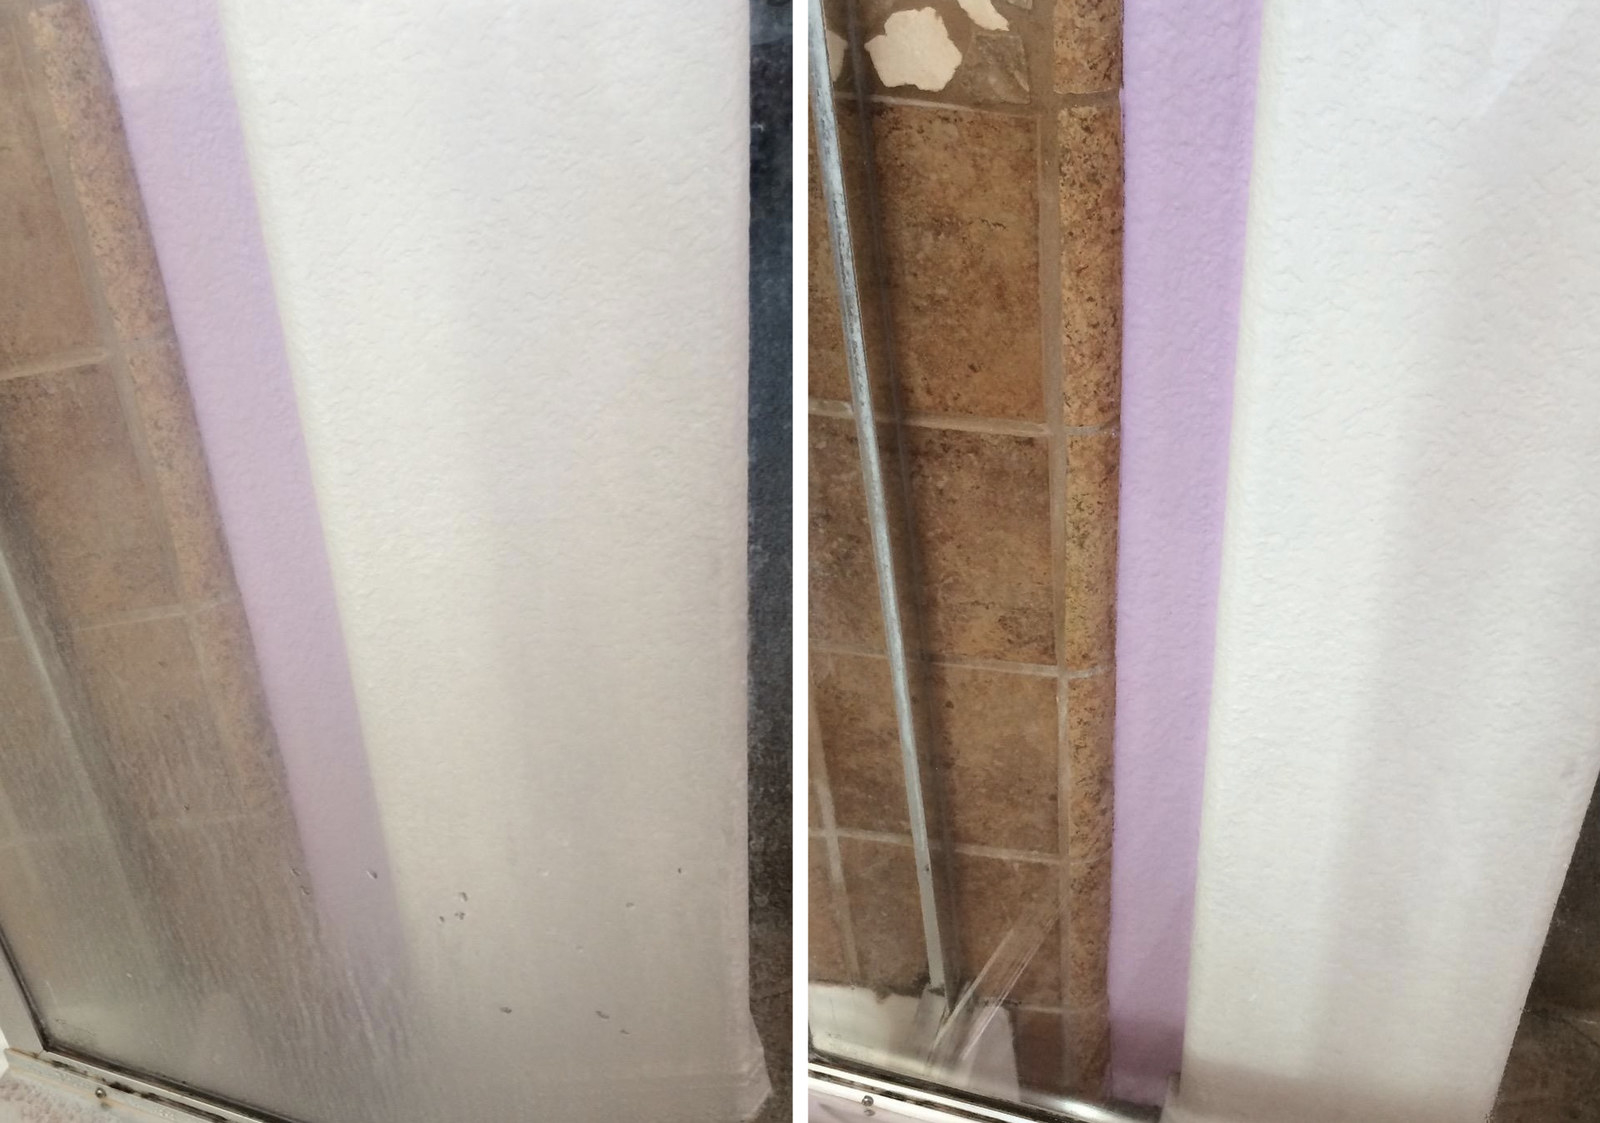 Amazon reviewer's glass shower door before, almost opaque with the mineral buildup, and after, no gunk in sight and completely see-through and clear